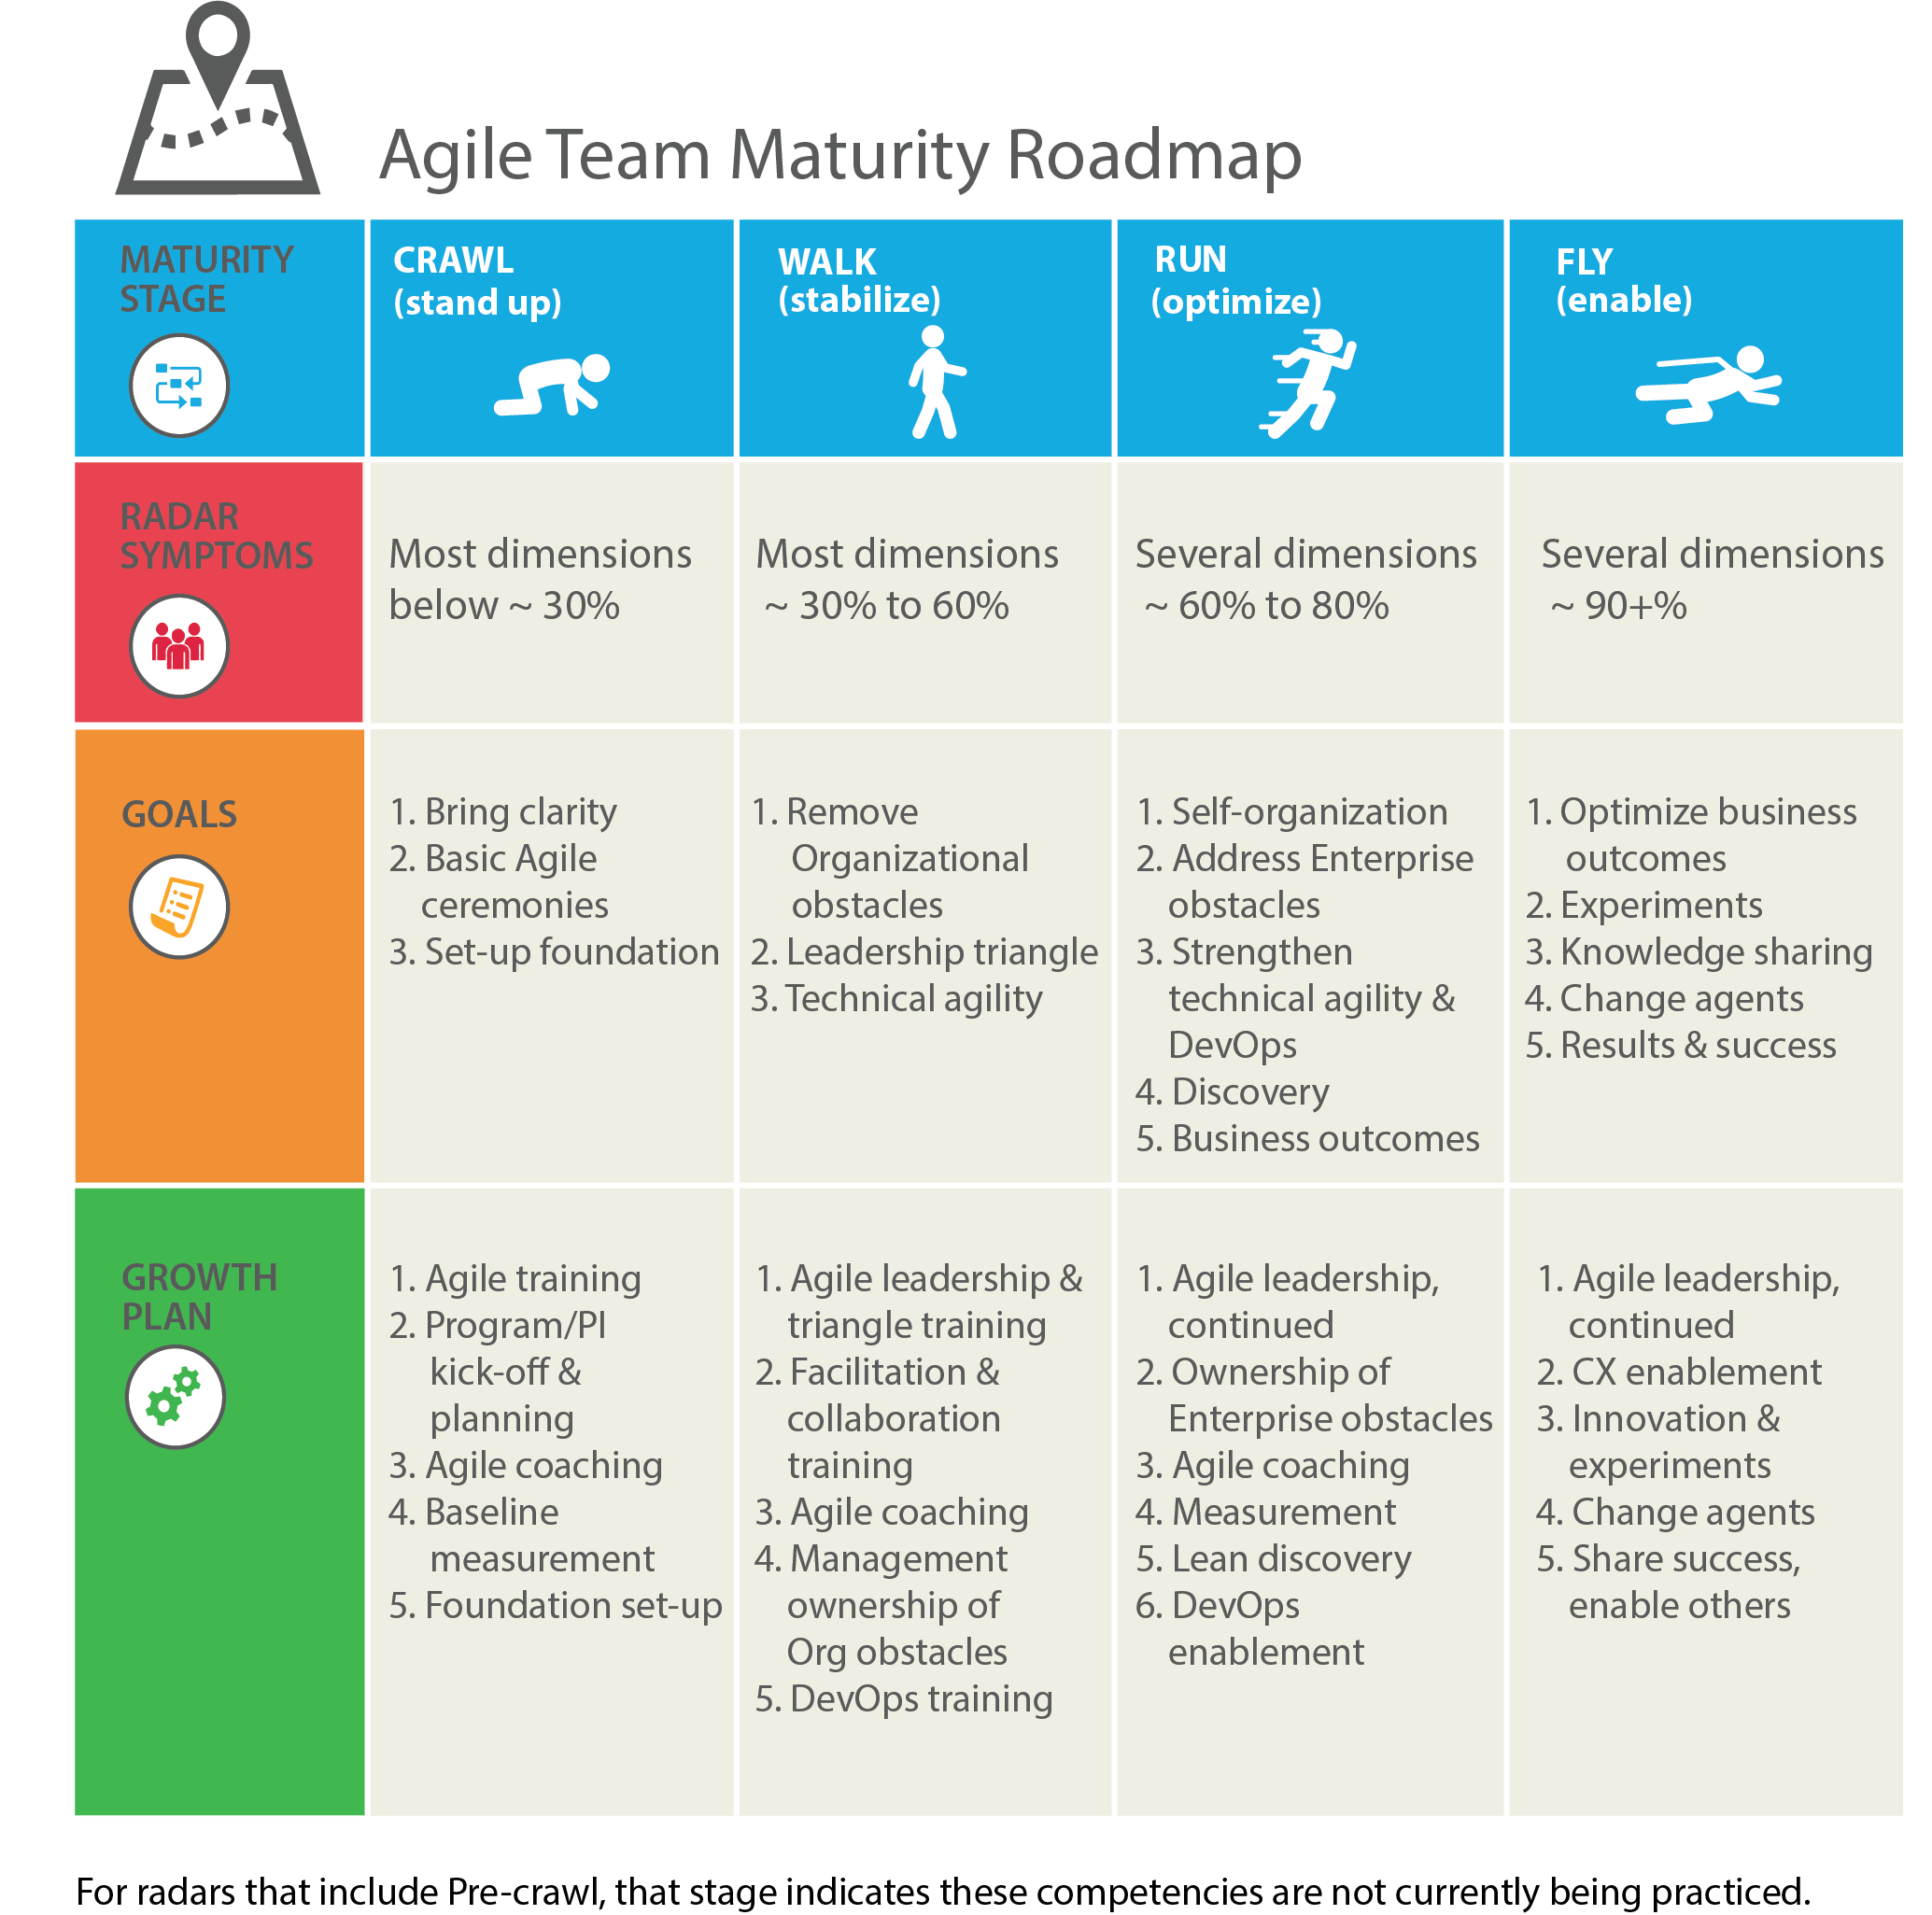 Agile_Team_Maturity_Roadmap.png